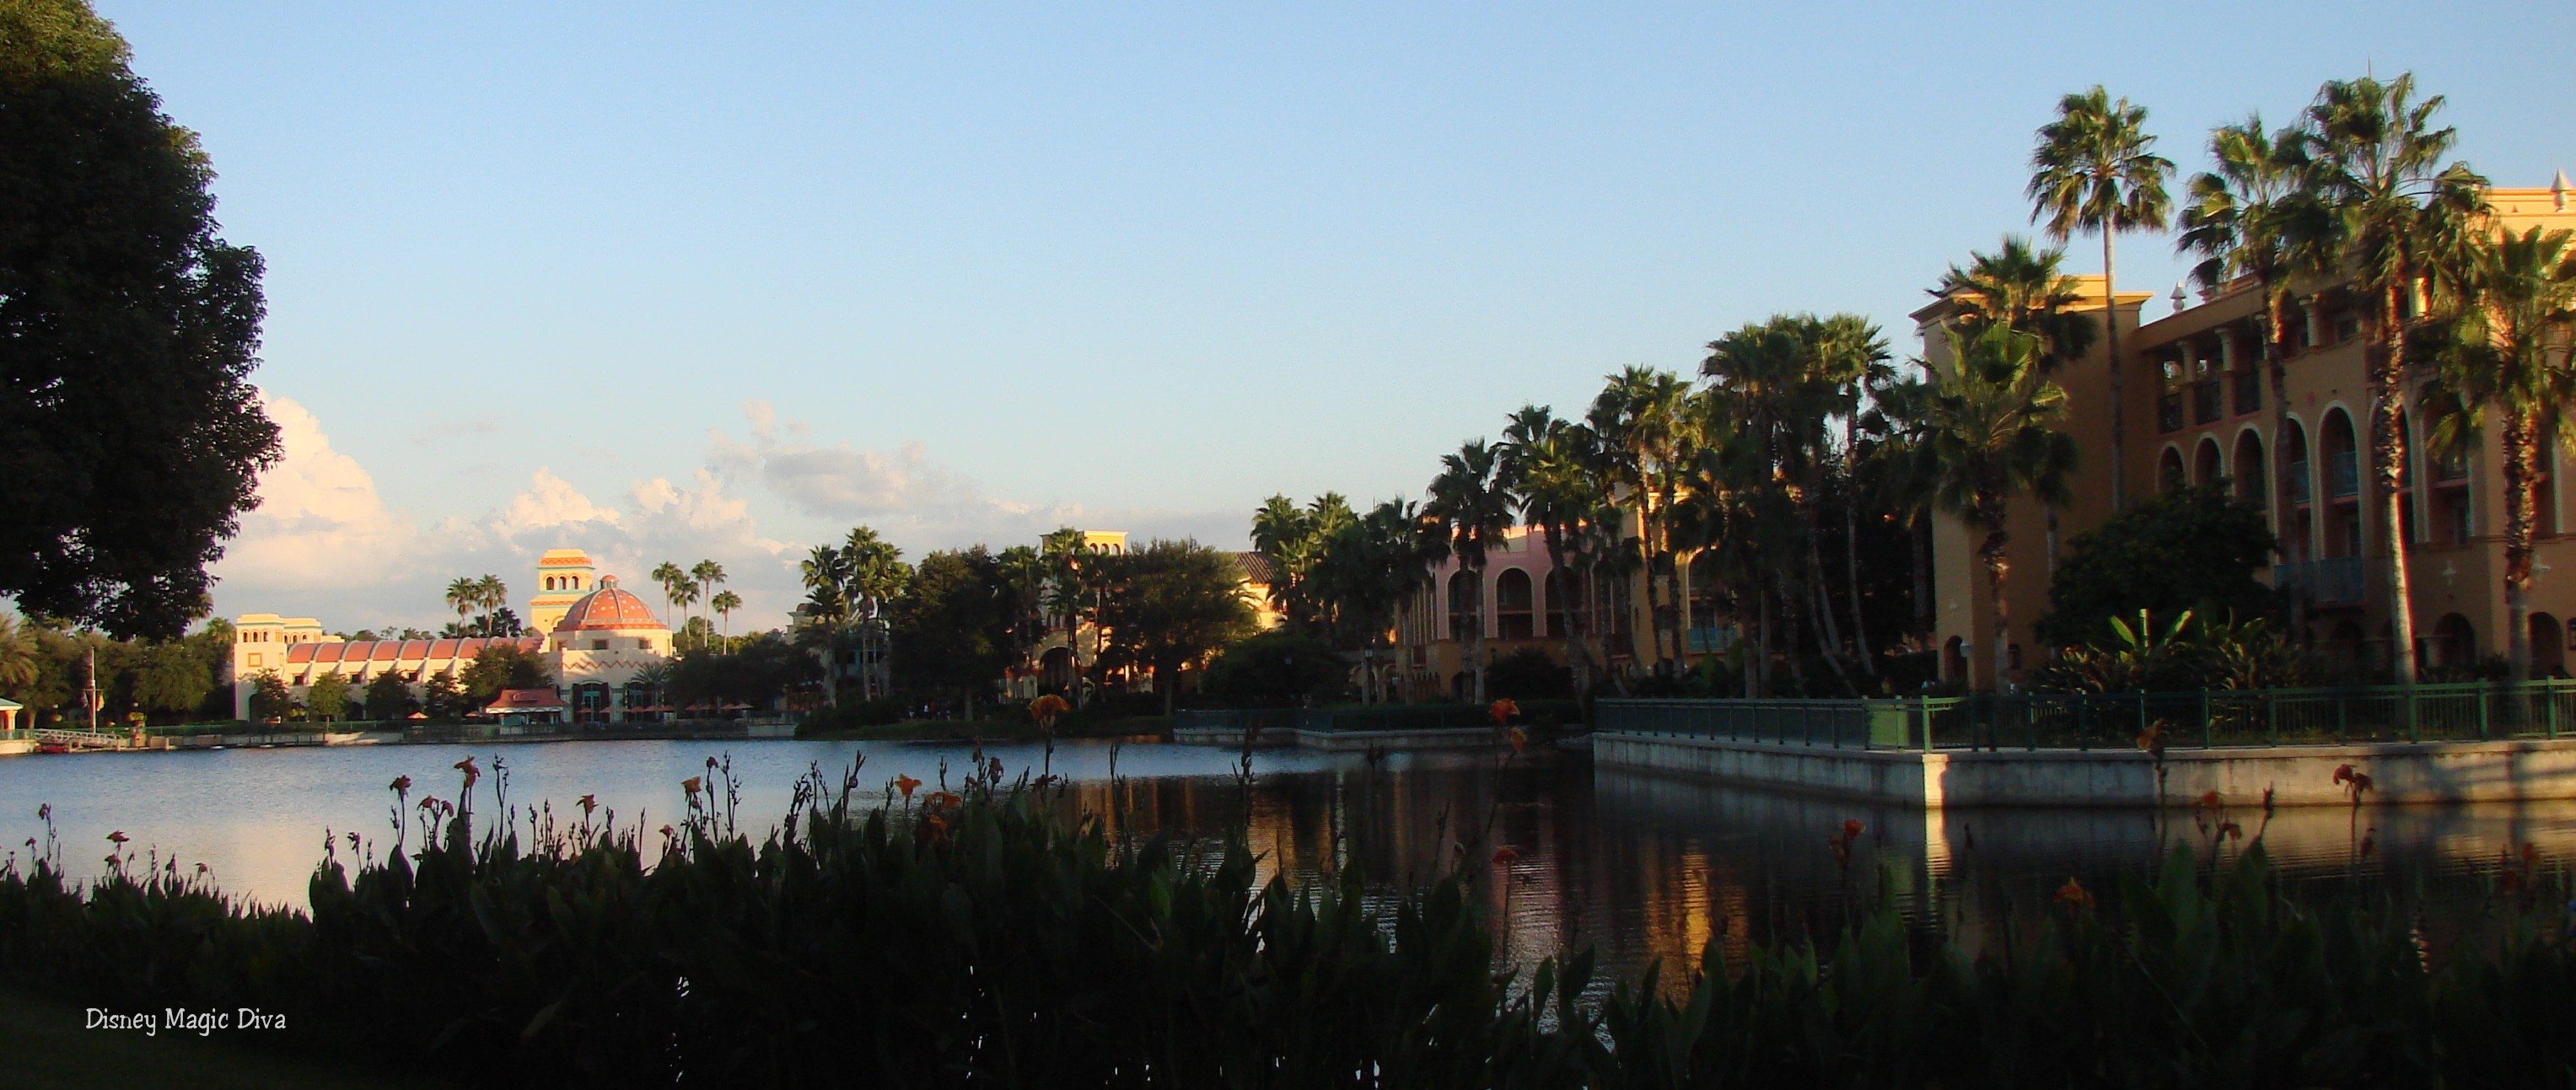 Why Should I Stay at a Walt Disney World Resort?